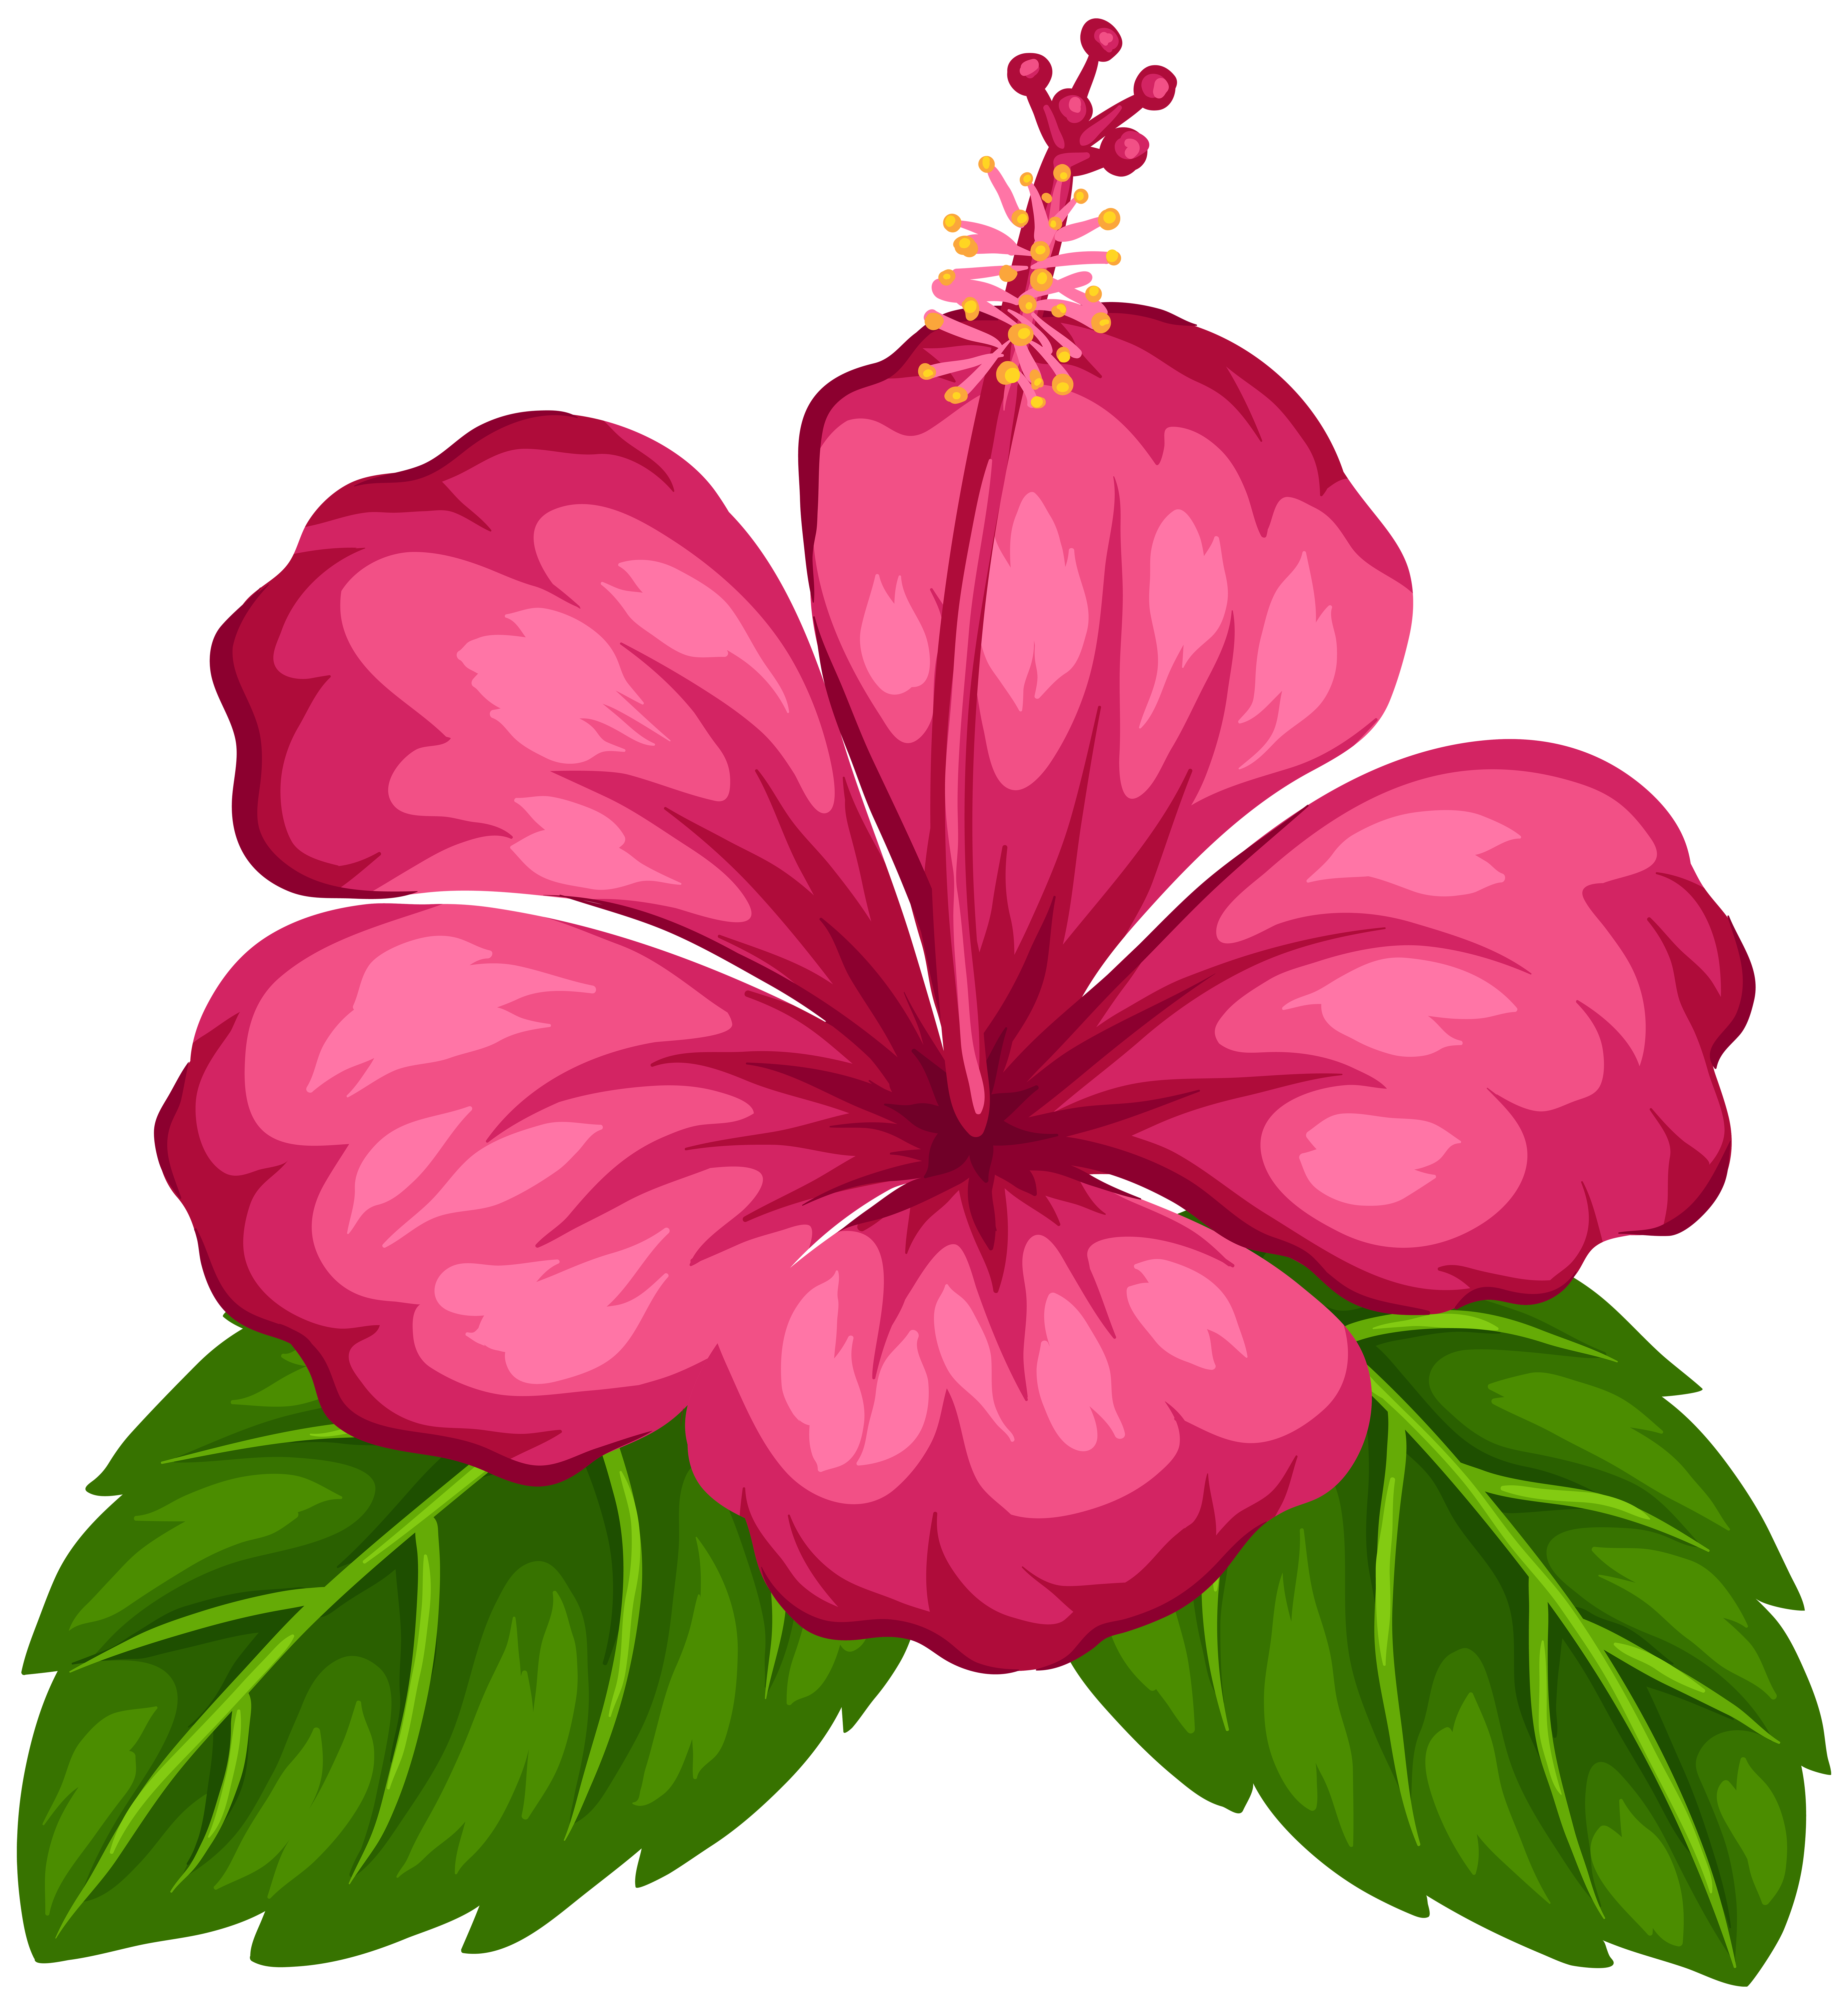 Flowers png images. Free moana clipart at